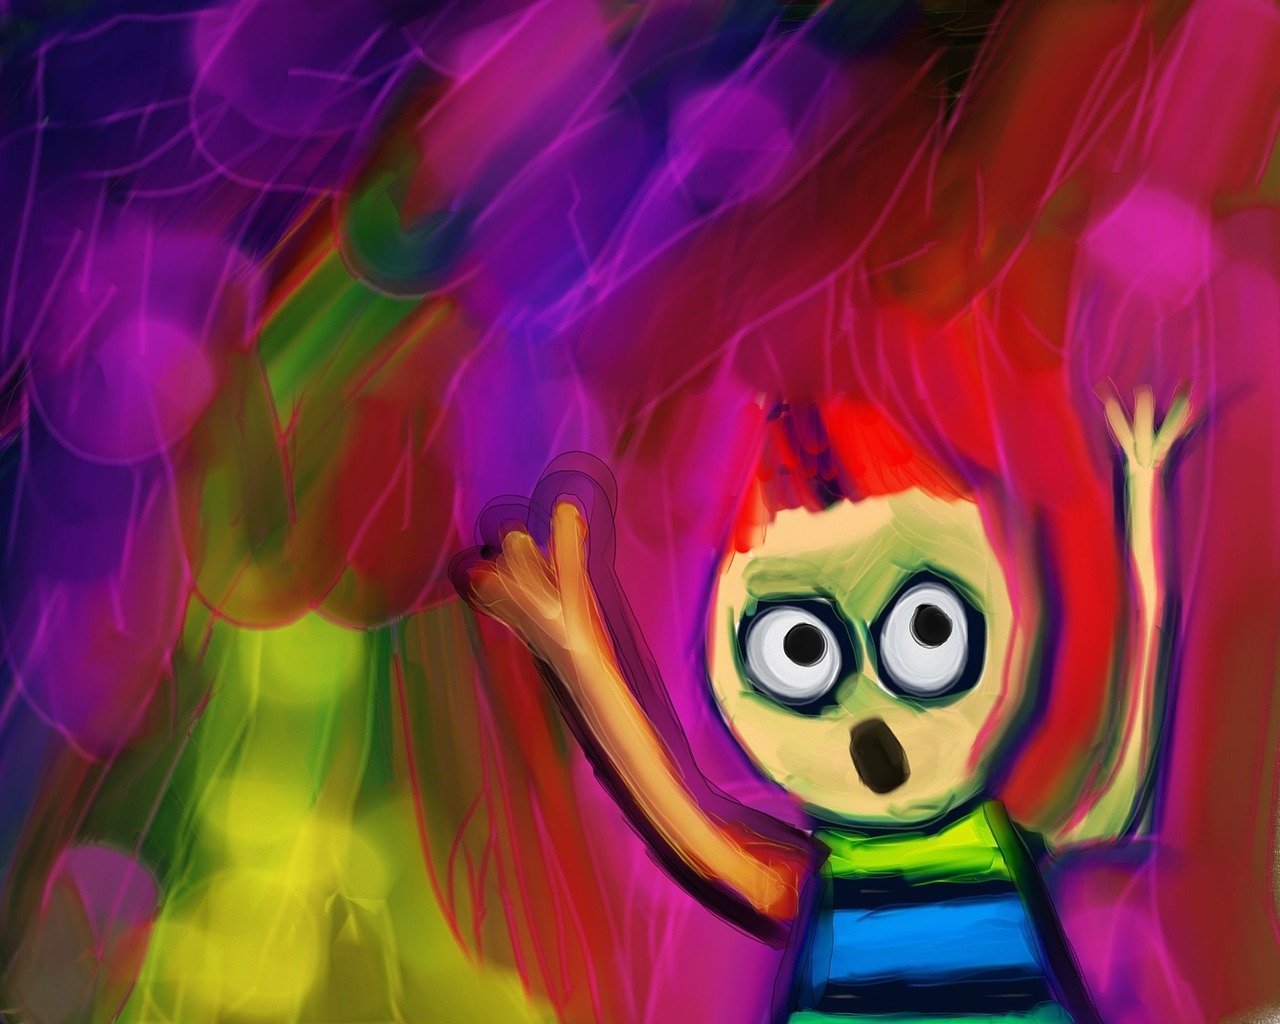 A colorful, childlike painting depicting a character with their hands raised up, eyes wide, & their mouth open in surprise.